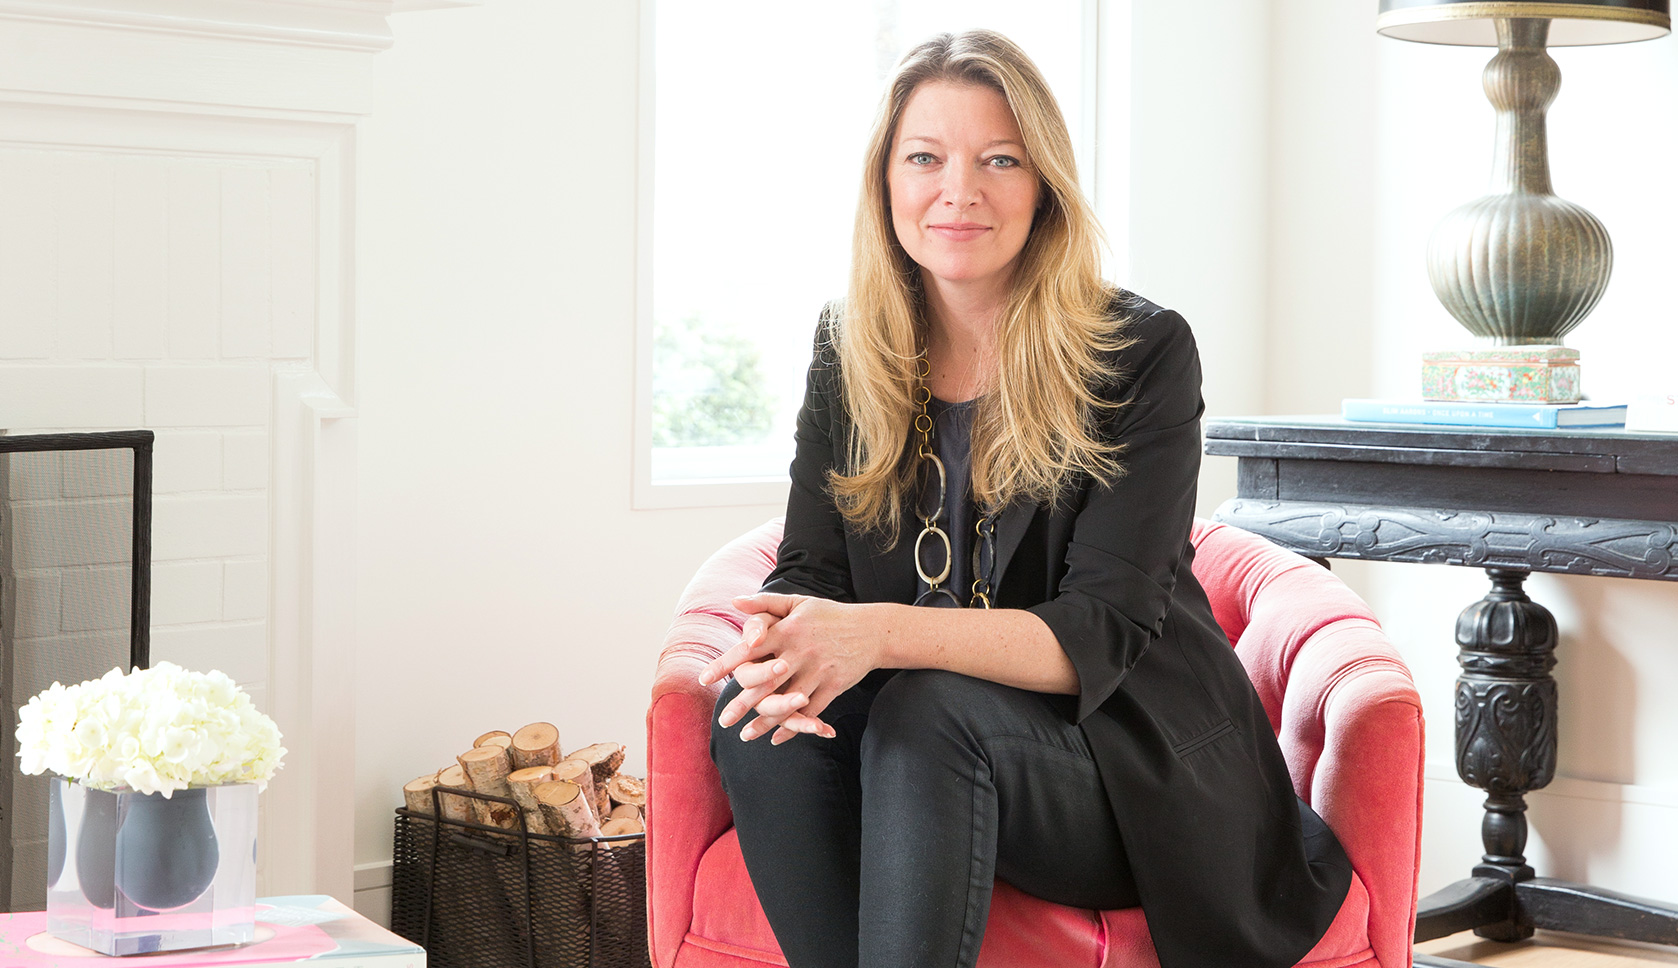 decorist sf office 15. Delighful Decorist 5 Minutes With Gretchen Hansen CEO And Founder Of Decorist In Sf Office 15